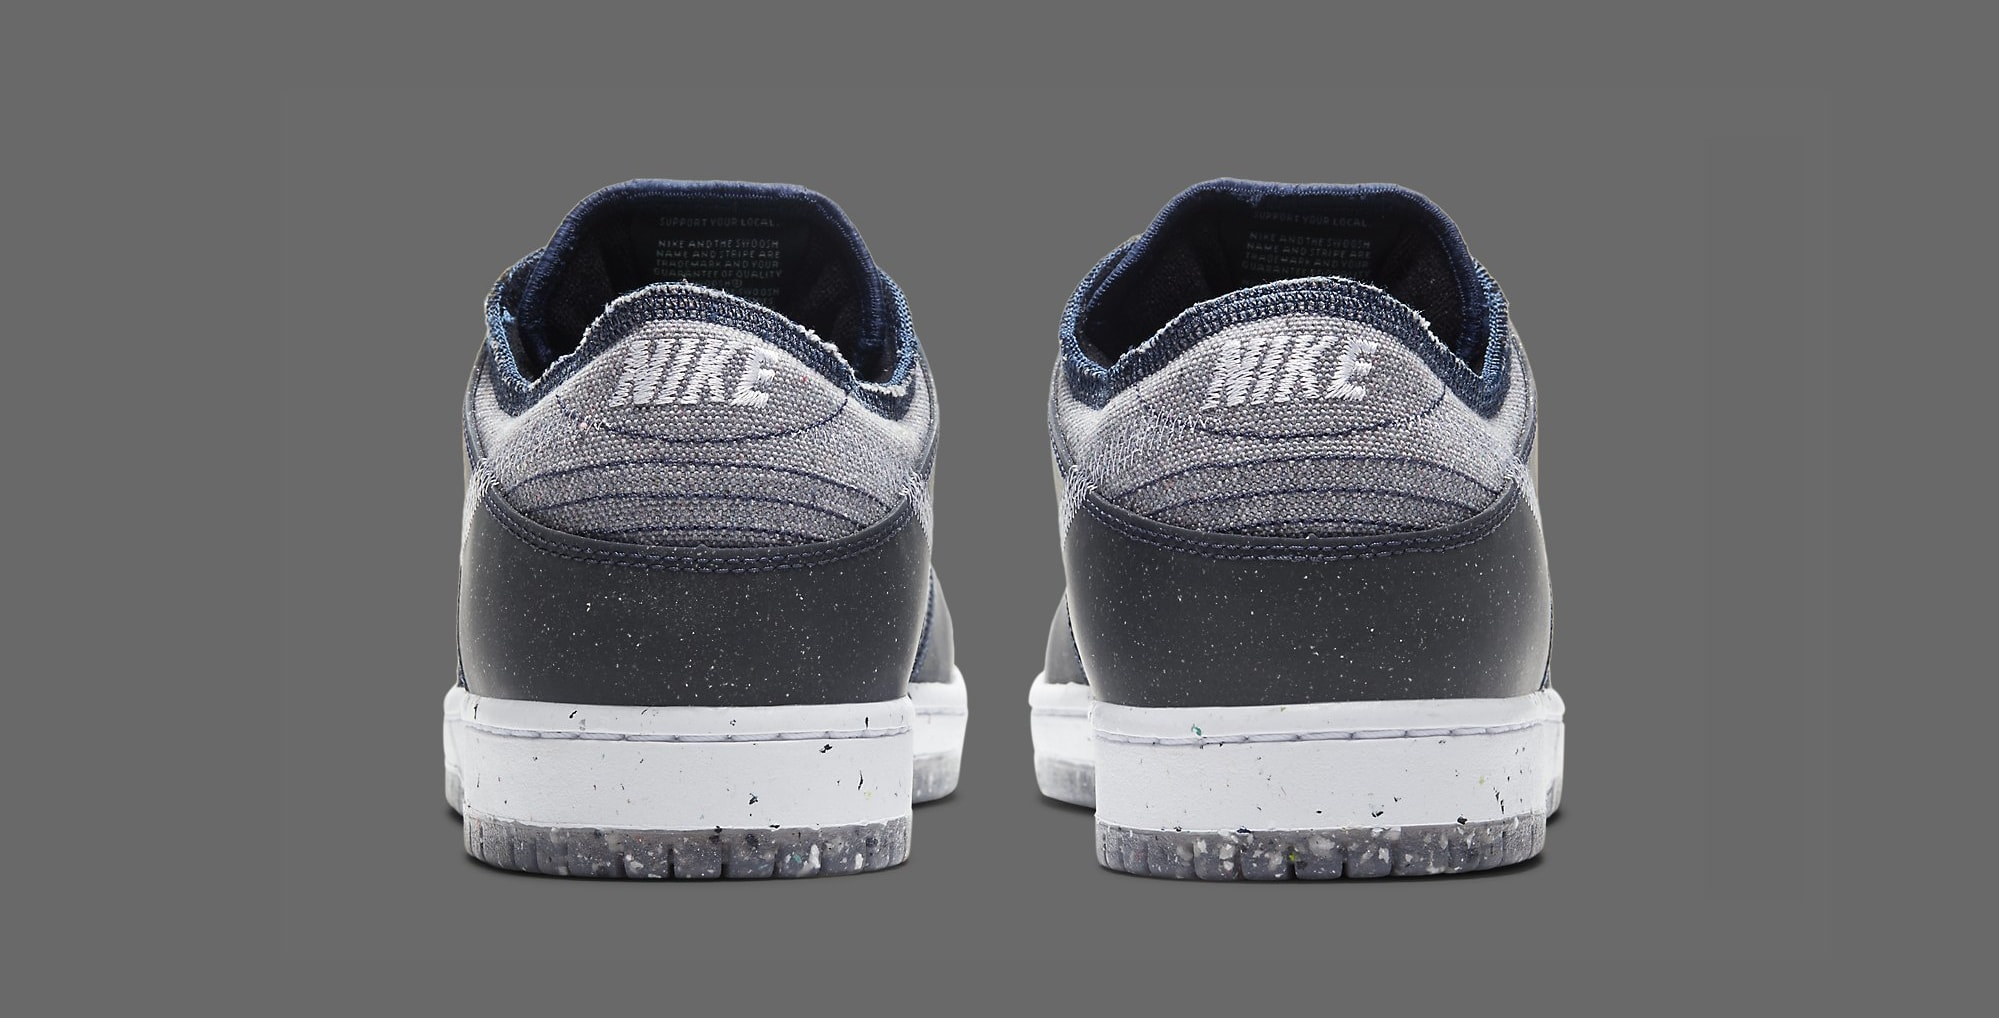 Nike SB Dunk Low 'Crater' CT2224-001 Heel